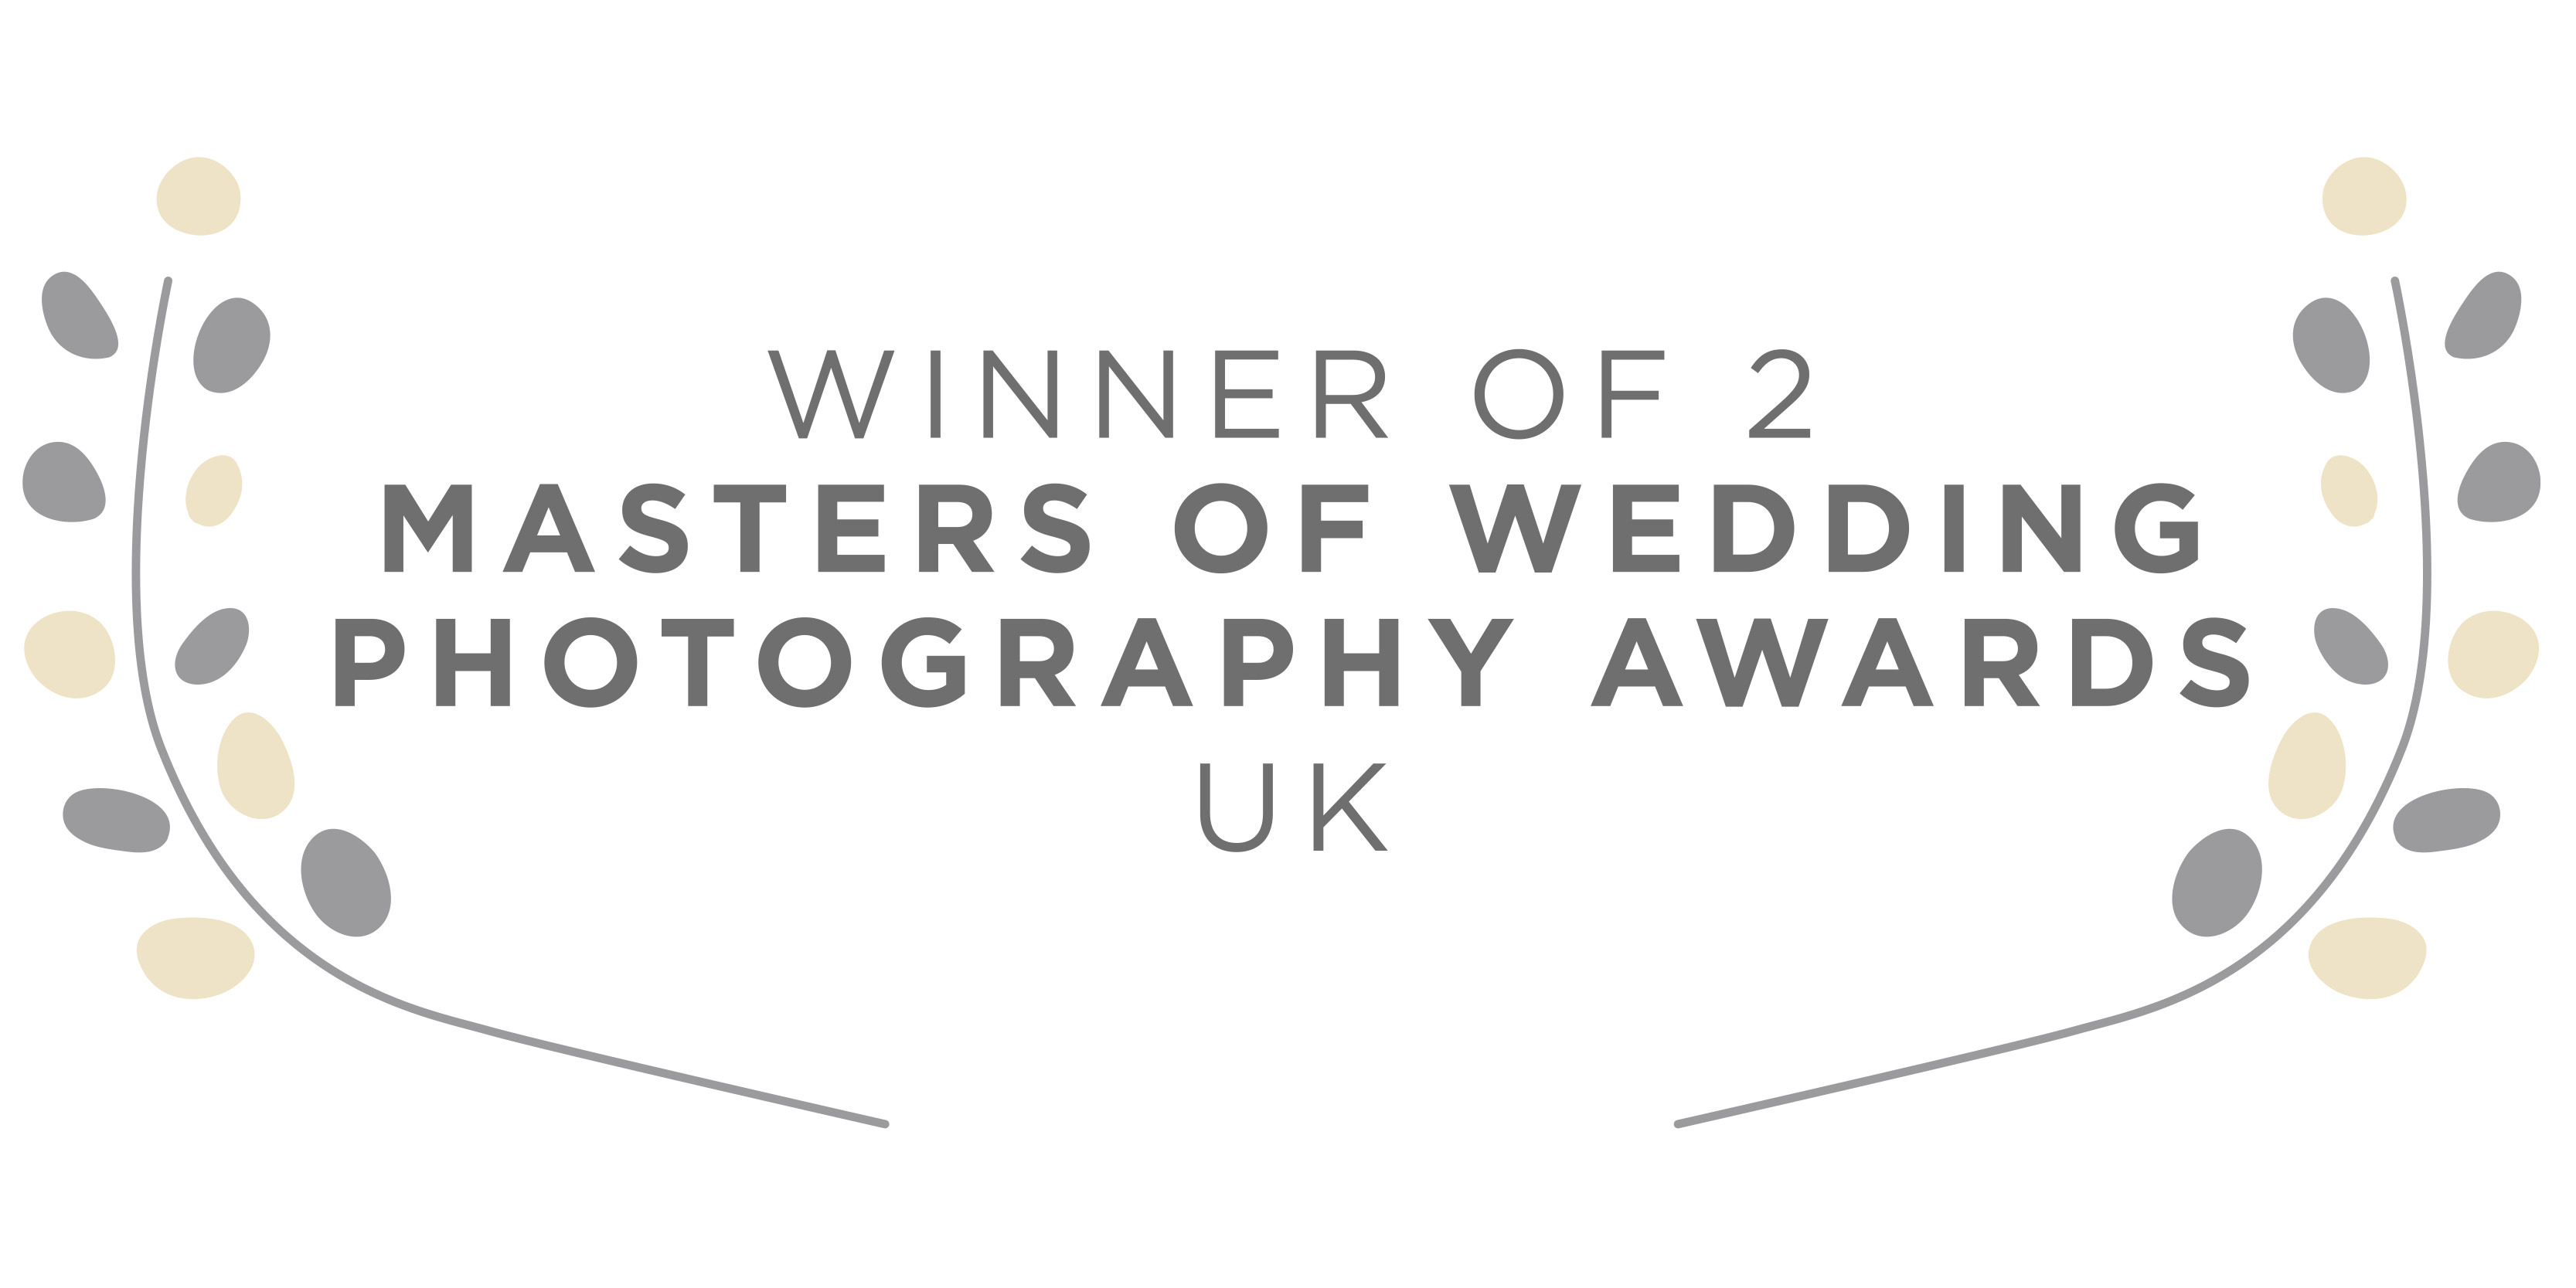 UK Masters of Wedding Photography Awards Winner